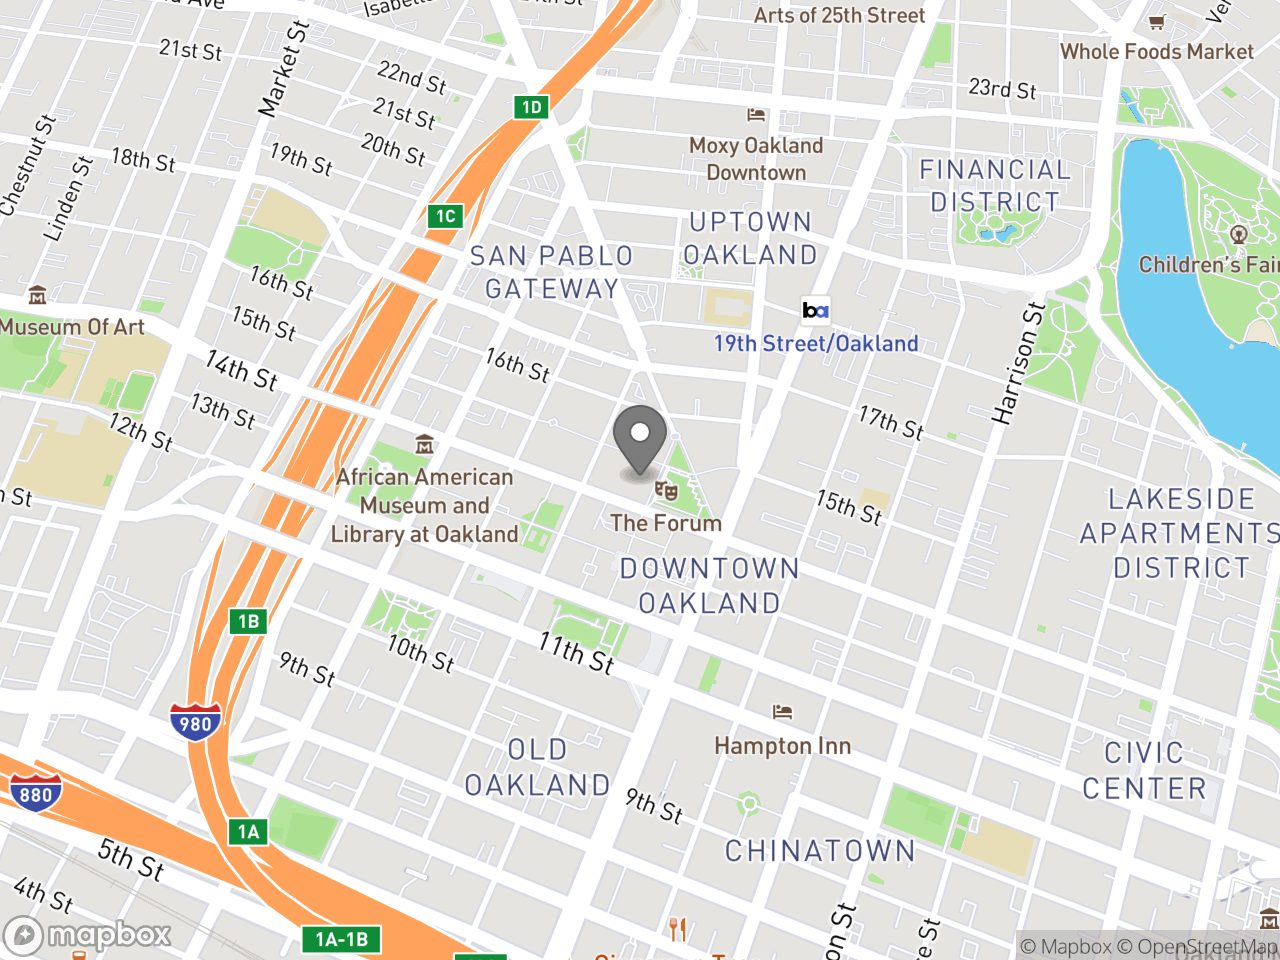 Map image for Bicyclist and Pedestrian Advisory Commission (BPAC) Meeting, September 20, 2018, located at 1 Frank H Ogawa Plaza in Oakland, CA 94612